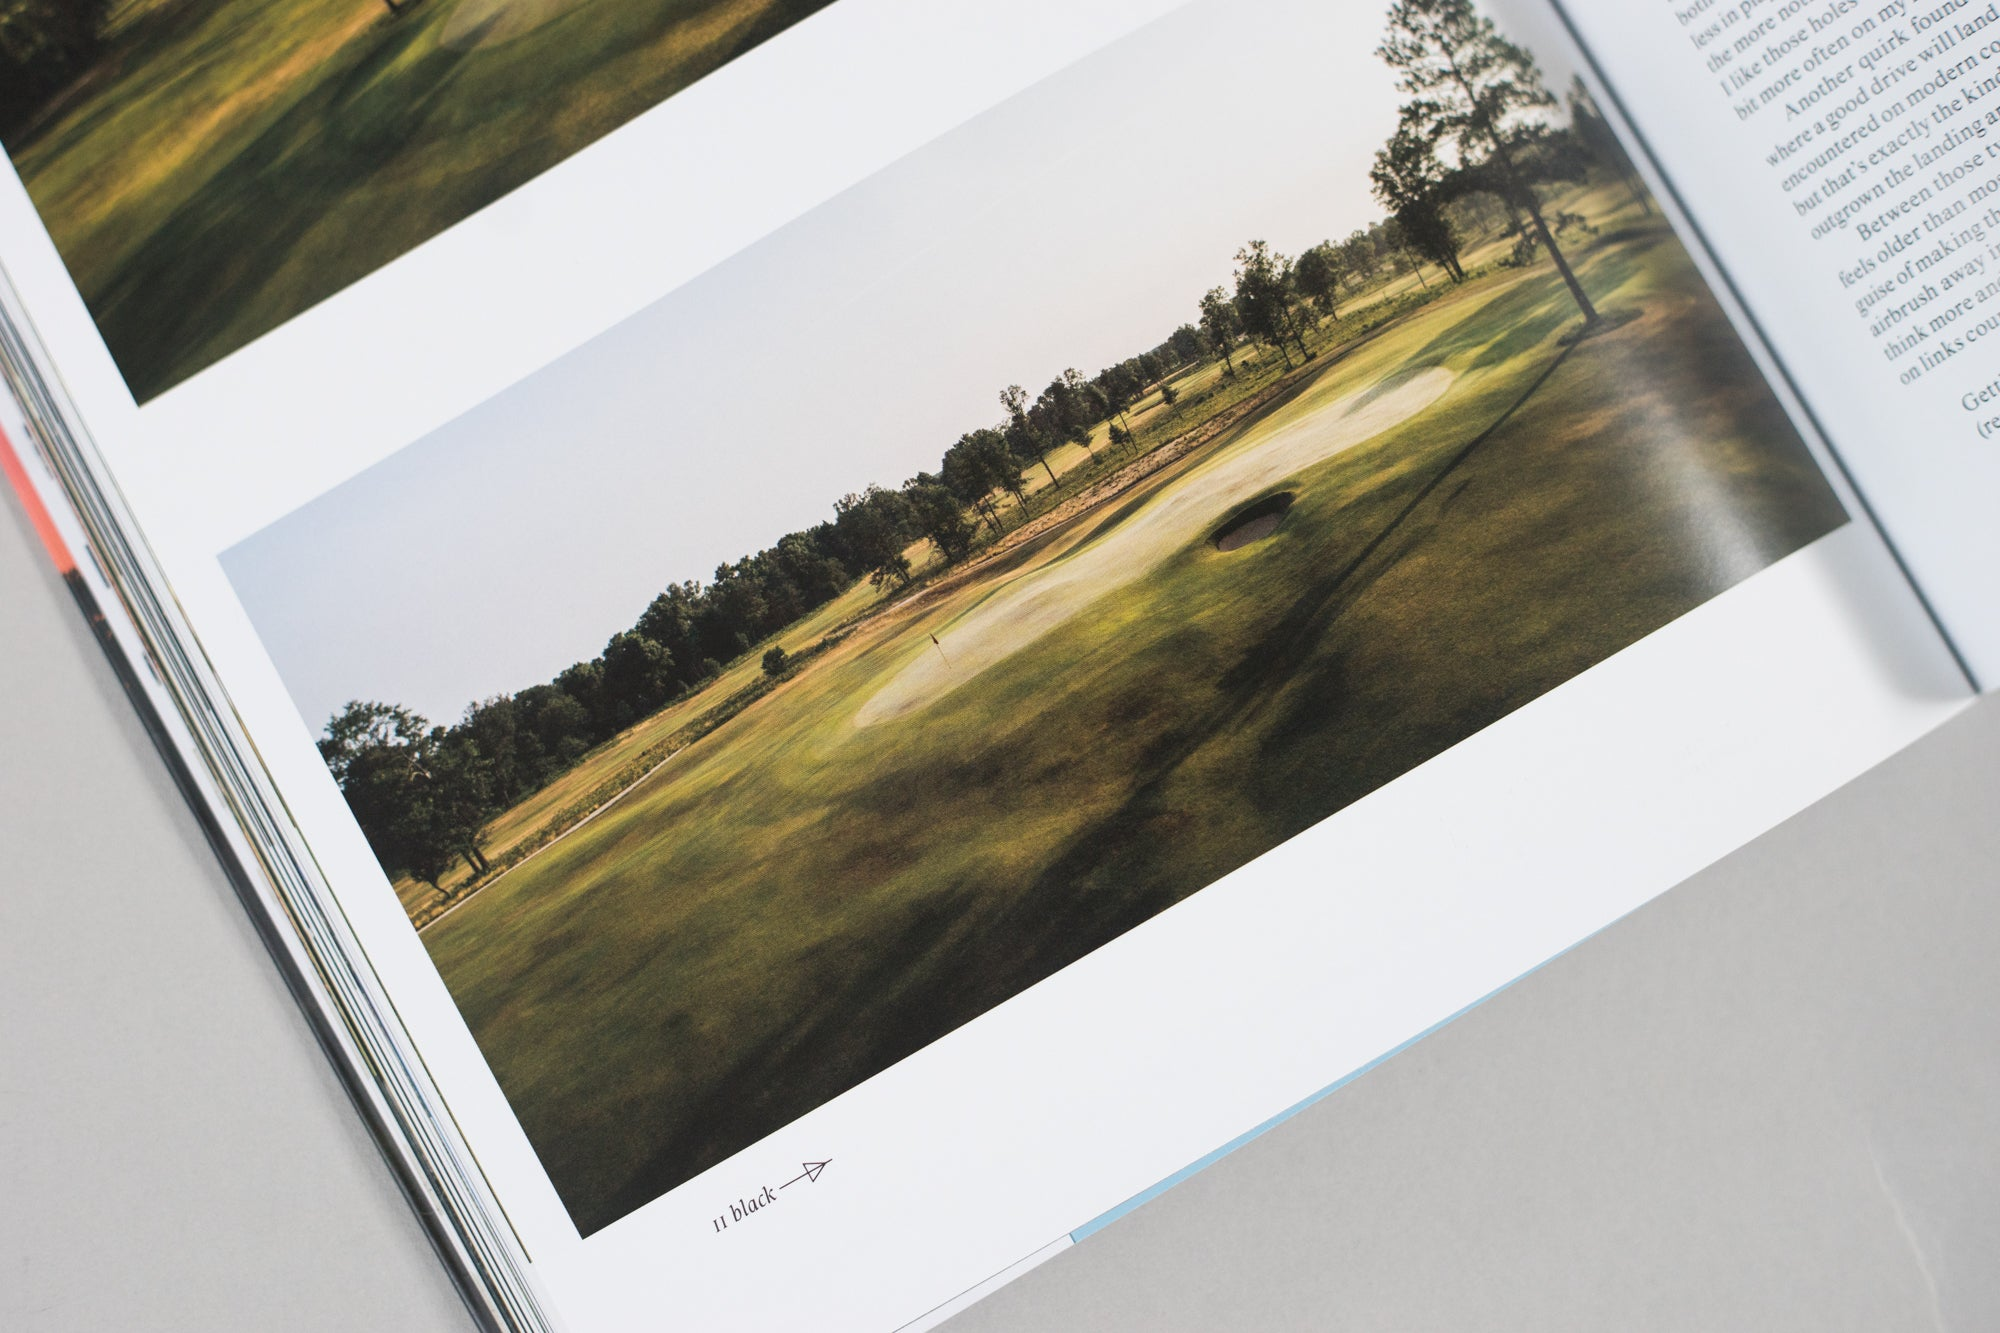 Photograph of a golf putting green included within The Golfer's Journal Issue 6